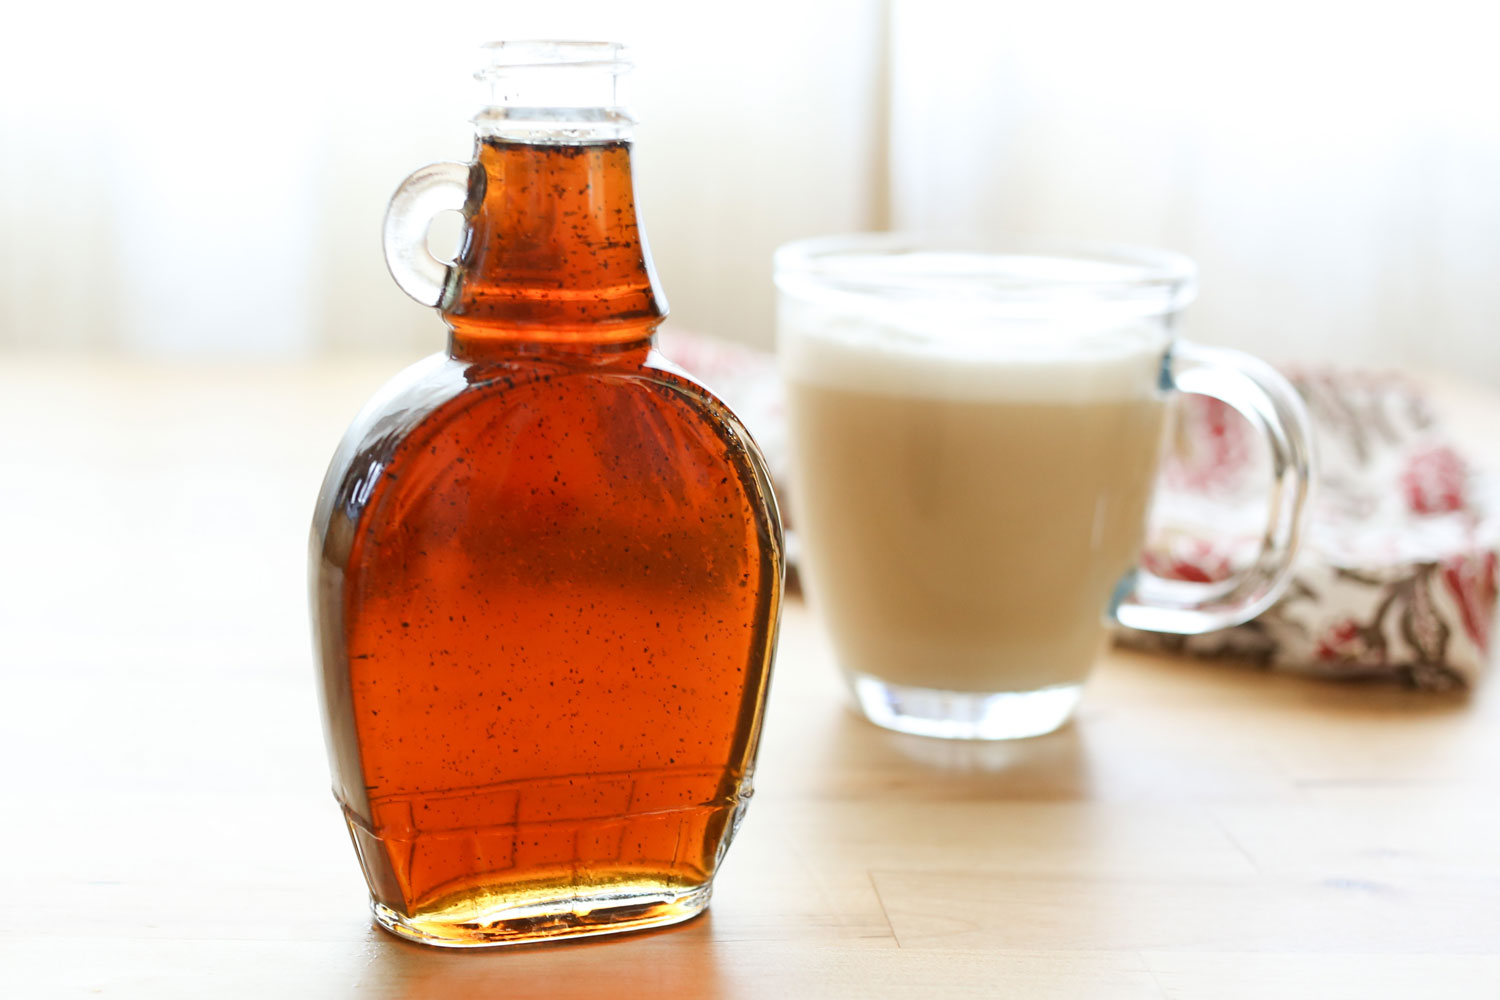 How To Make Vanilla Coffee Syrup - free of preservatives and artificial flavors, for a fraction of the store-bought price!